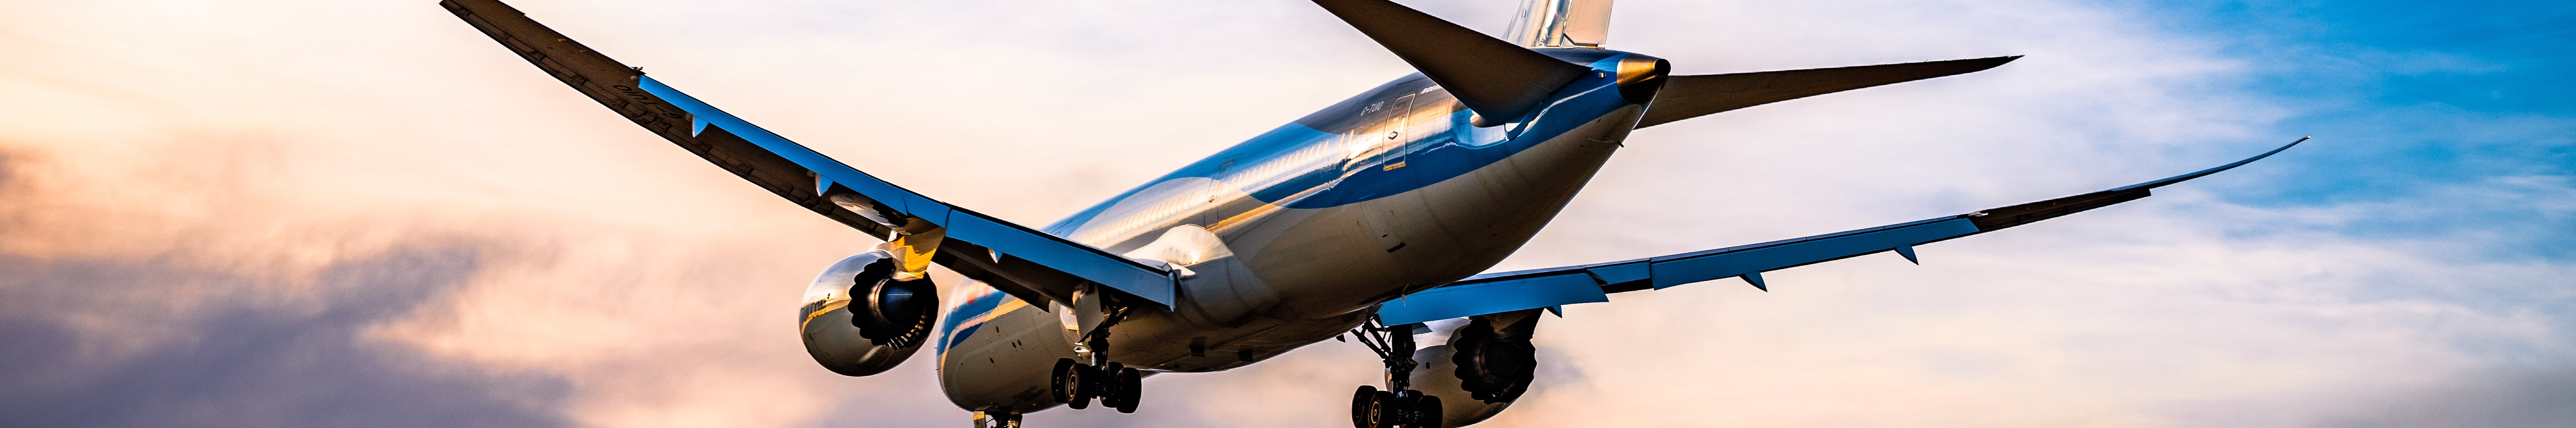 Aircrafts manufactured by Boeing may have carried 1.7 billion people worldwide in 2019